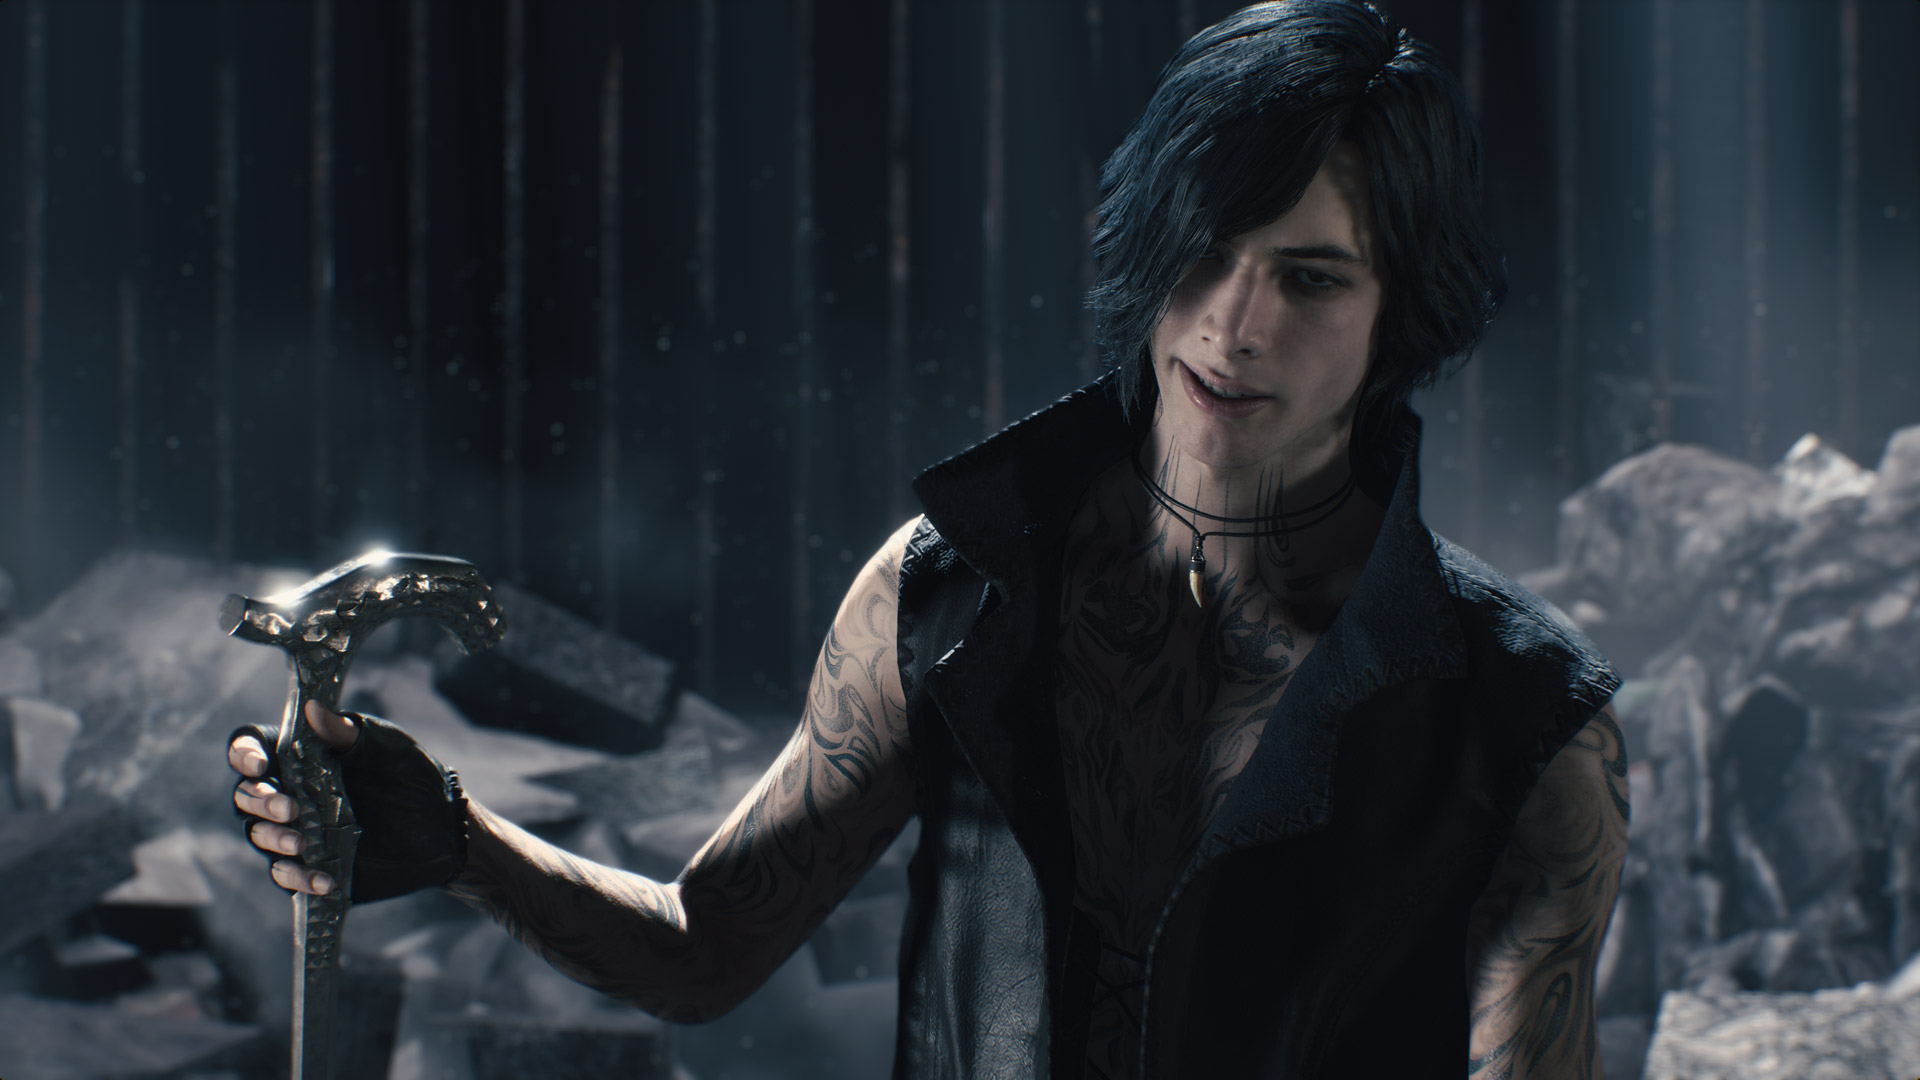 Free Devil May Cry 5 Wallpaper in 1920x1080